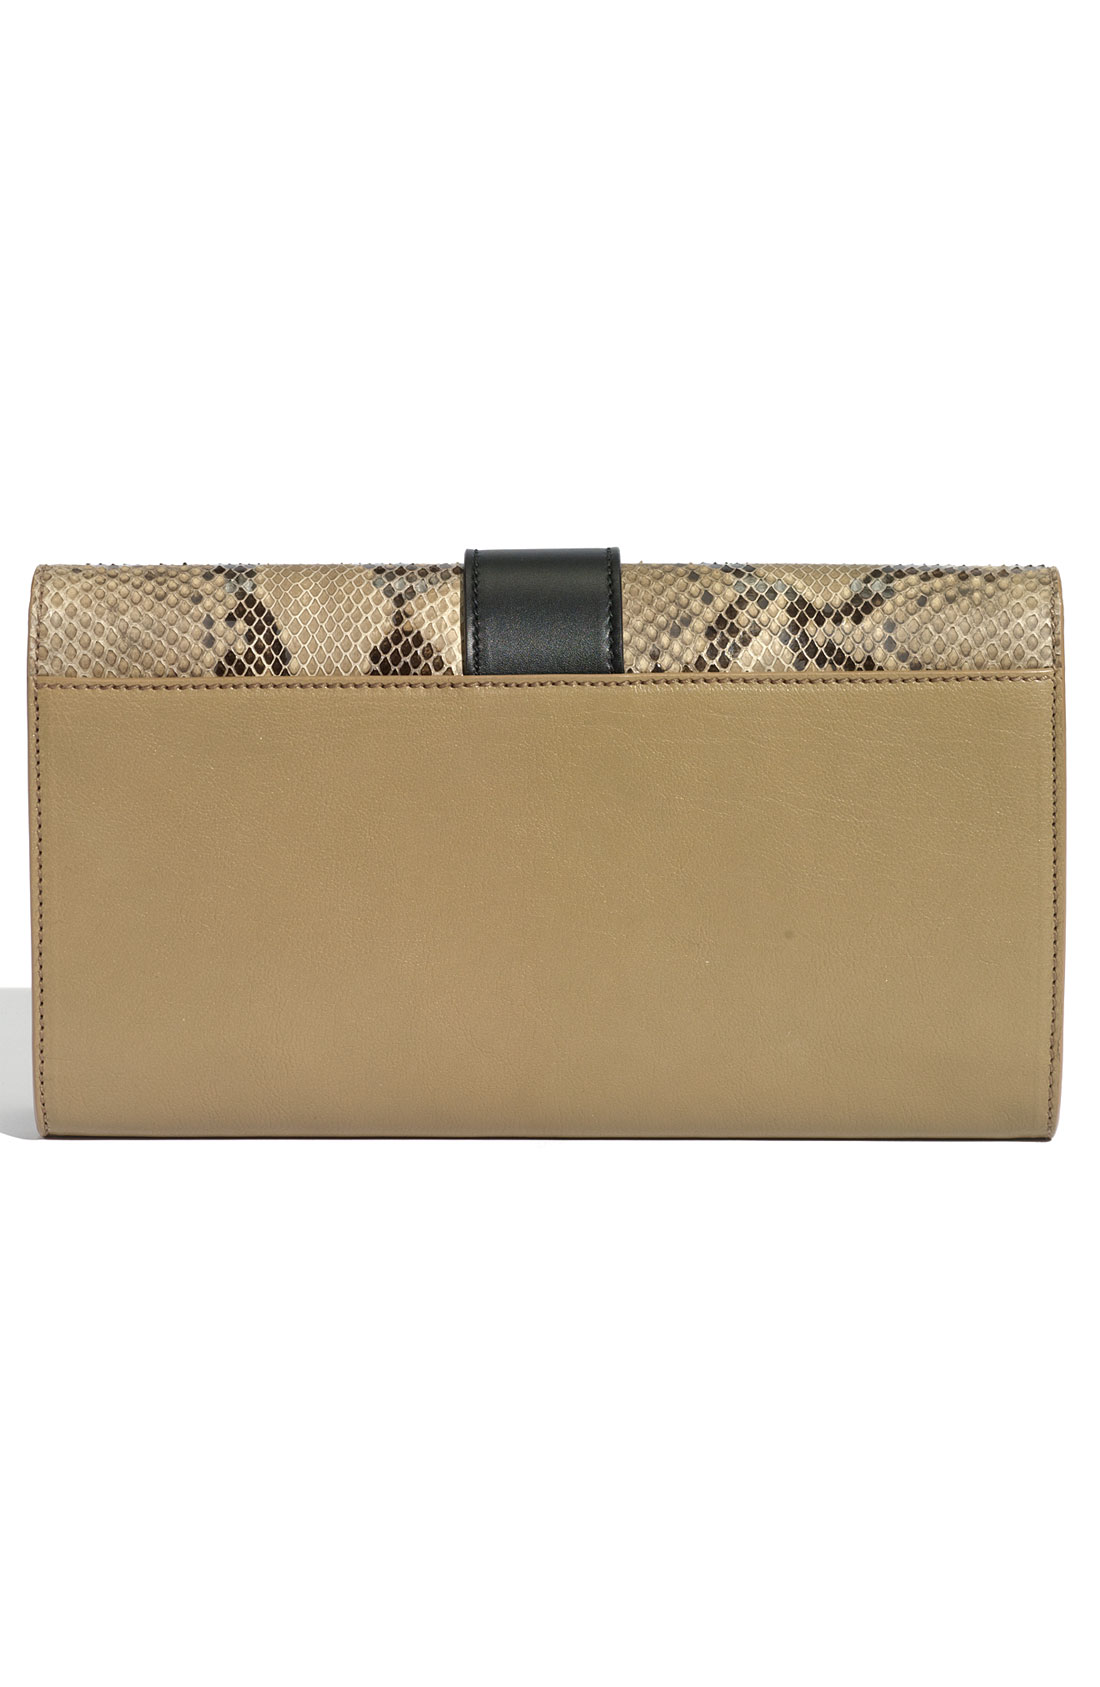 ysl mens bag - yves saint laurent python chyc clutch, ysl clutch outlet